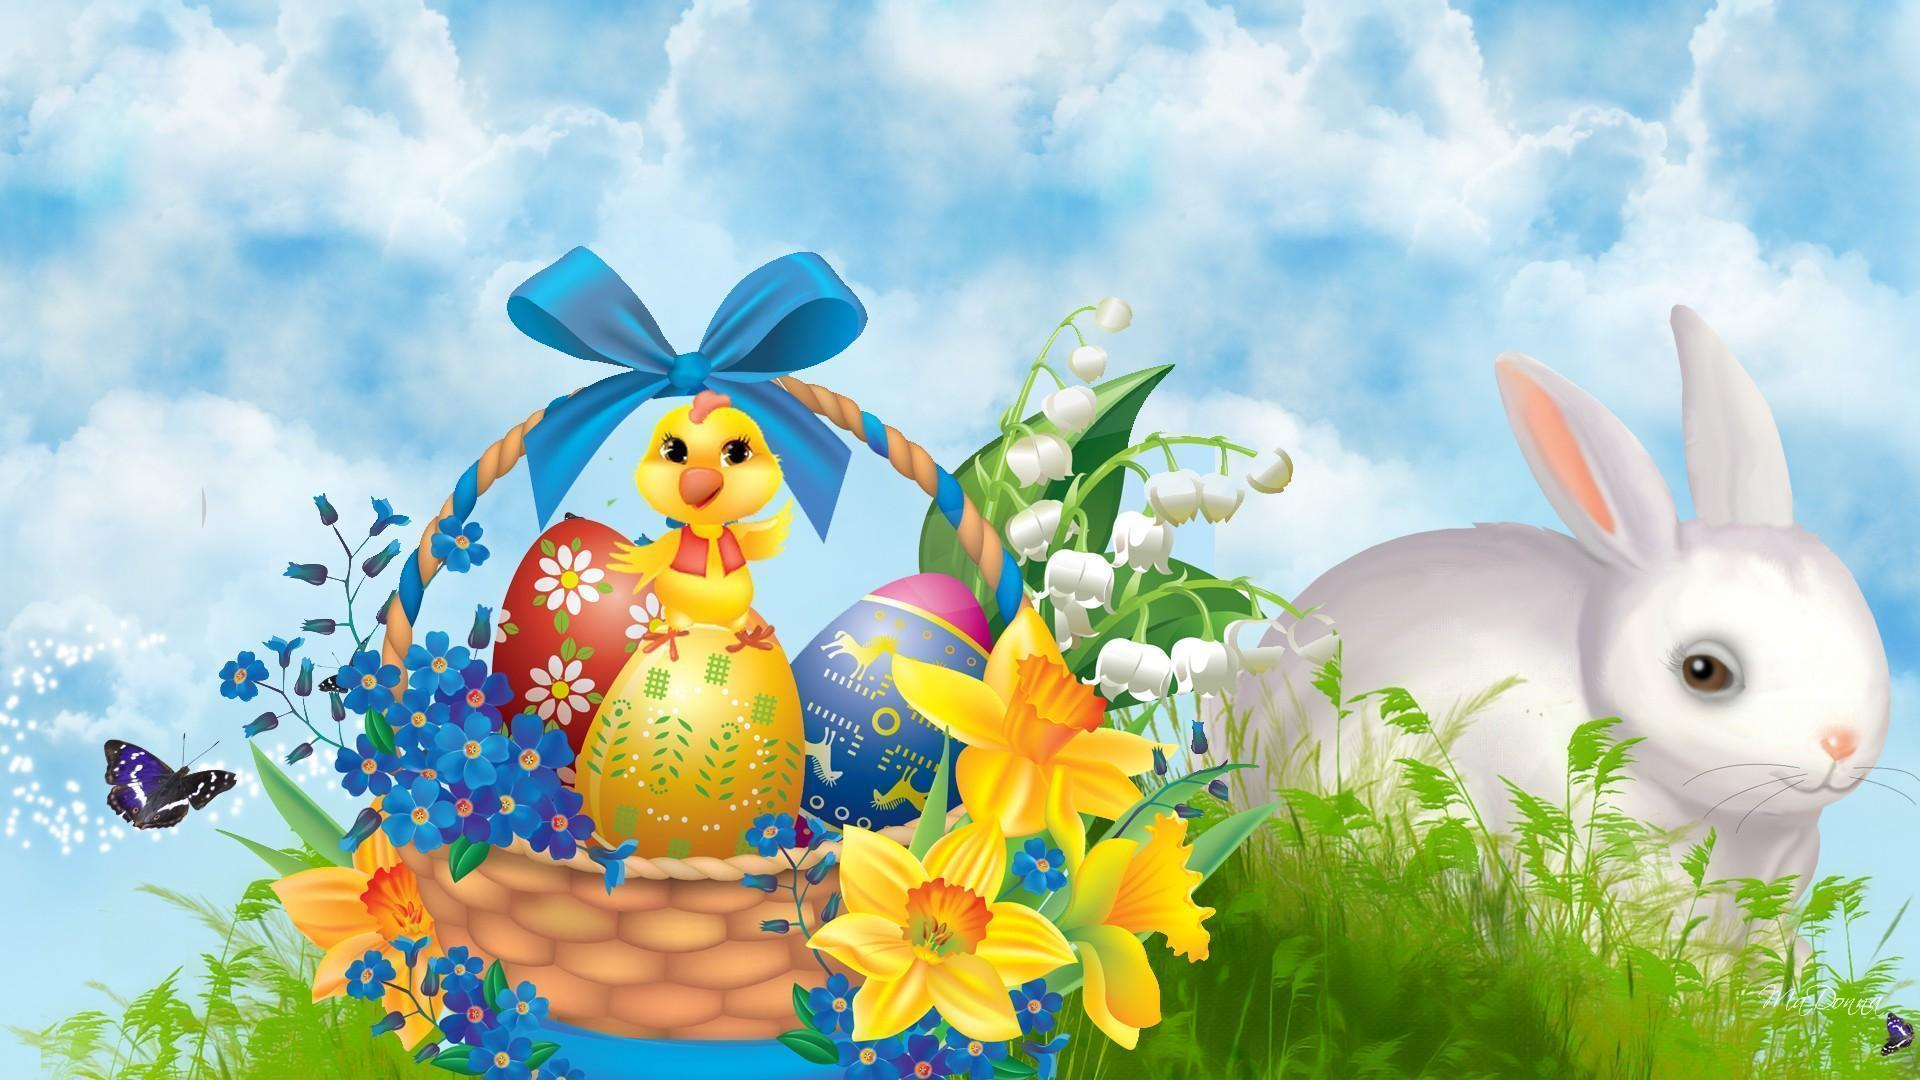 Easter bunny wallpapers wallpaper cave - Easter bunny wallpaper ...